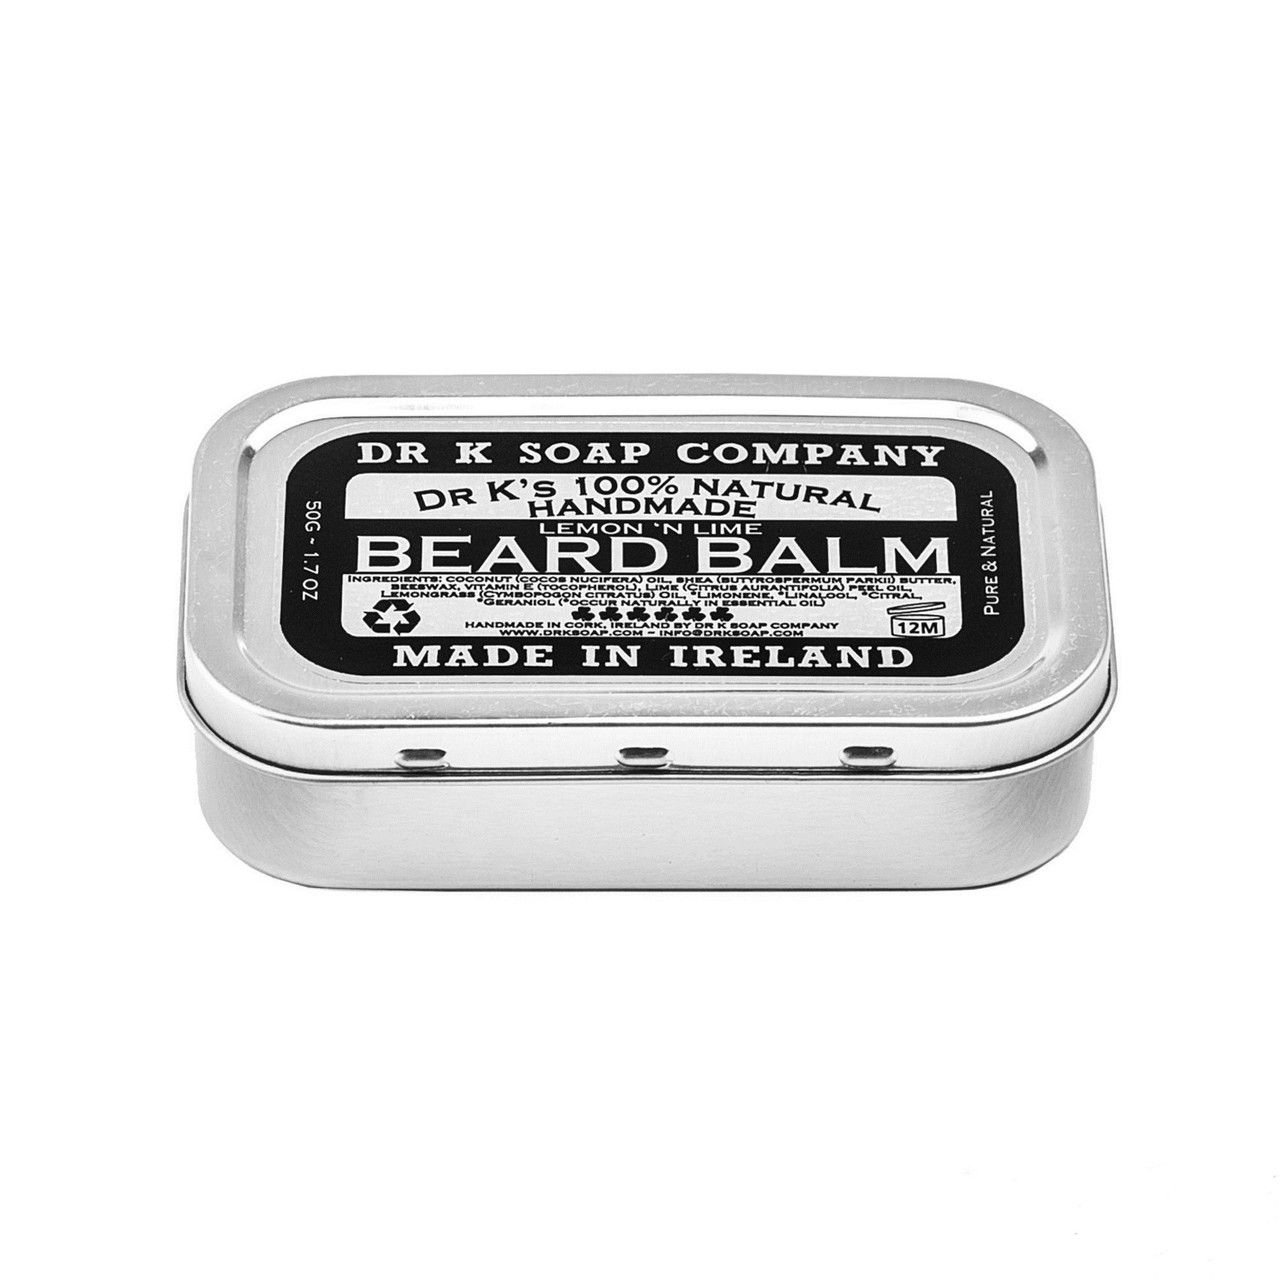 Бальзам для бороды DR. K. Beard Balm Lemon & Lime 50 г